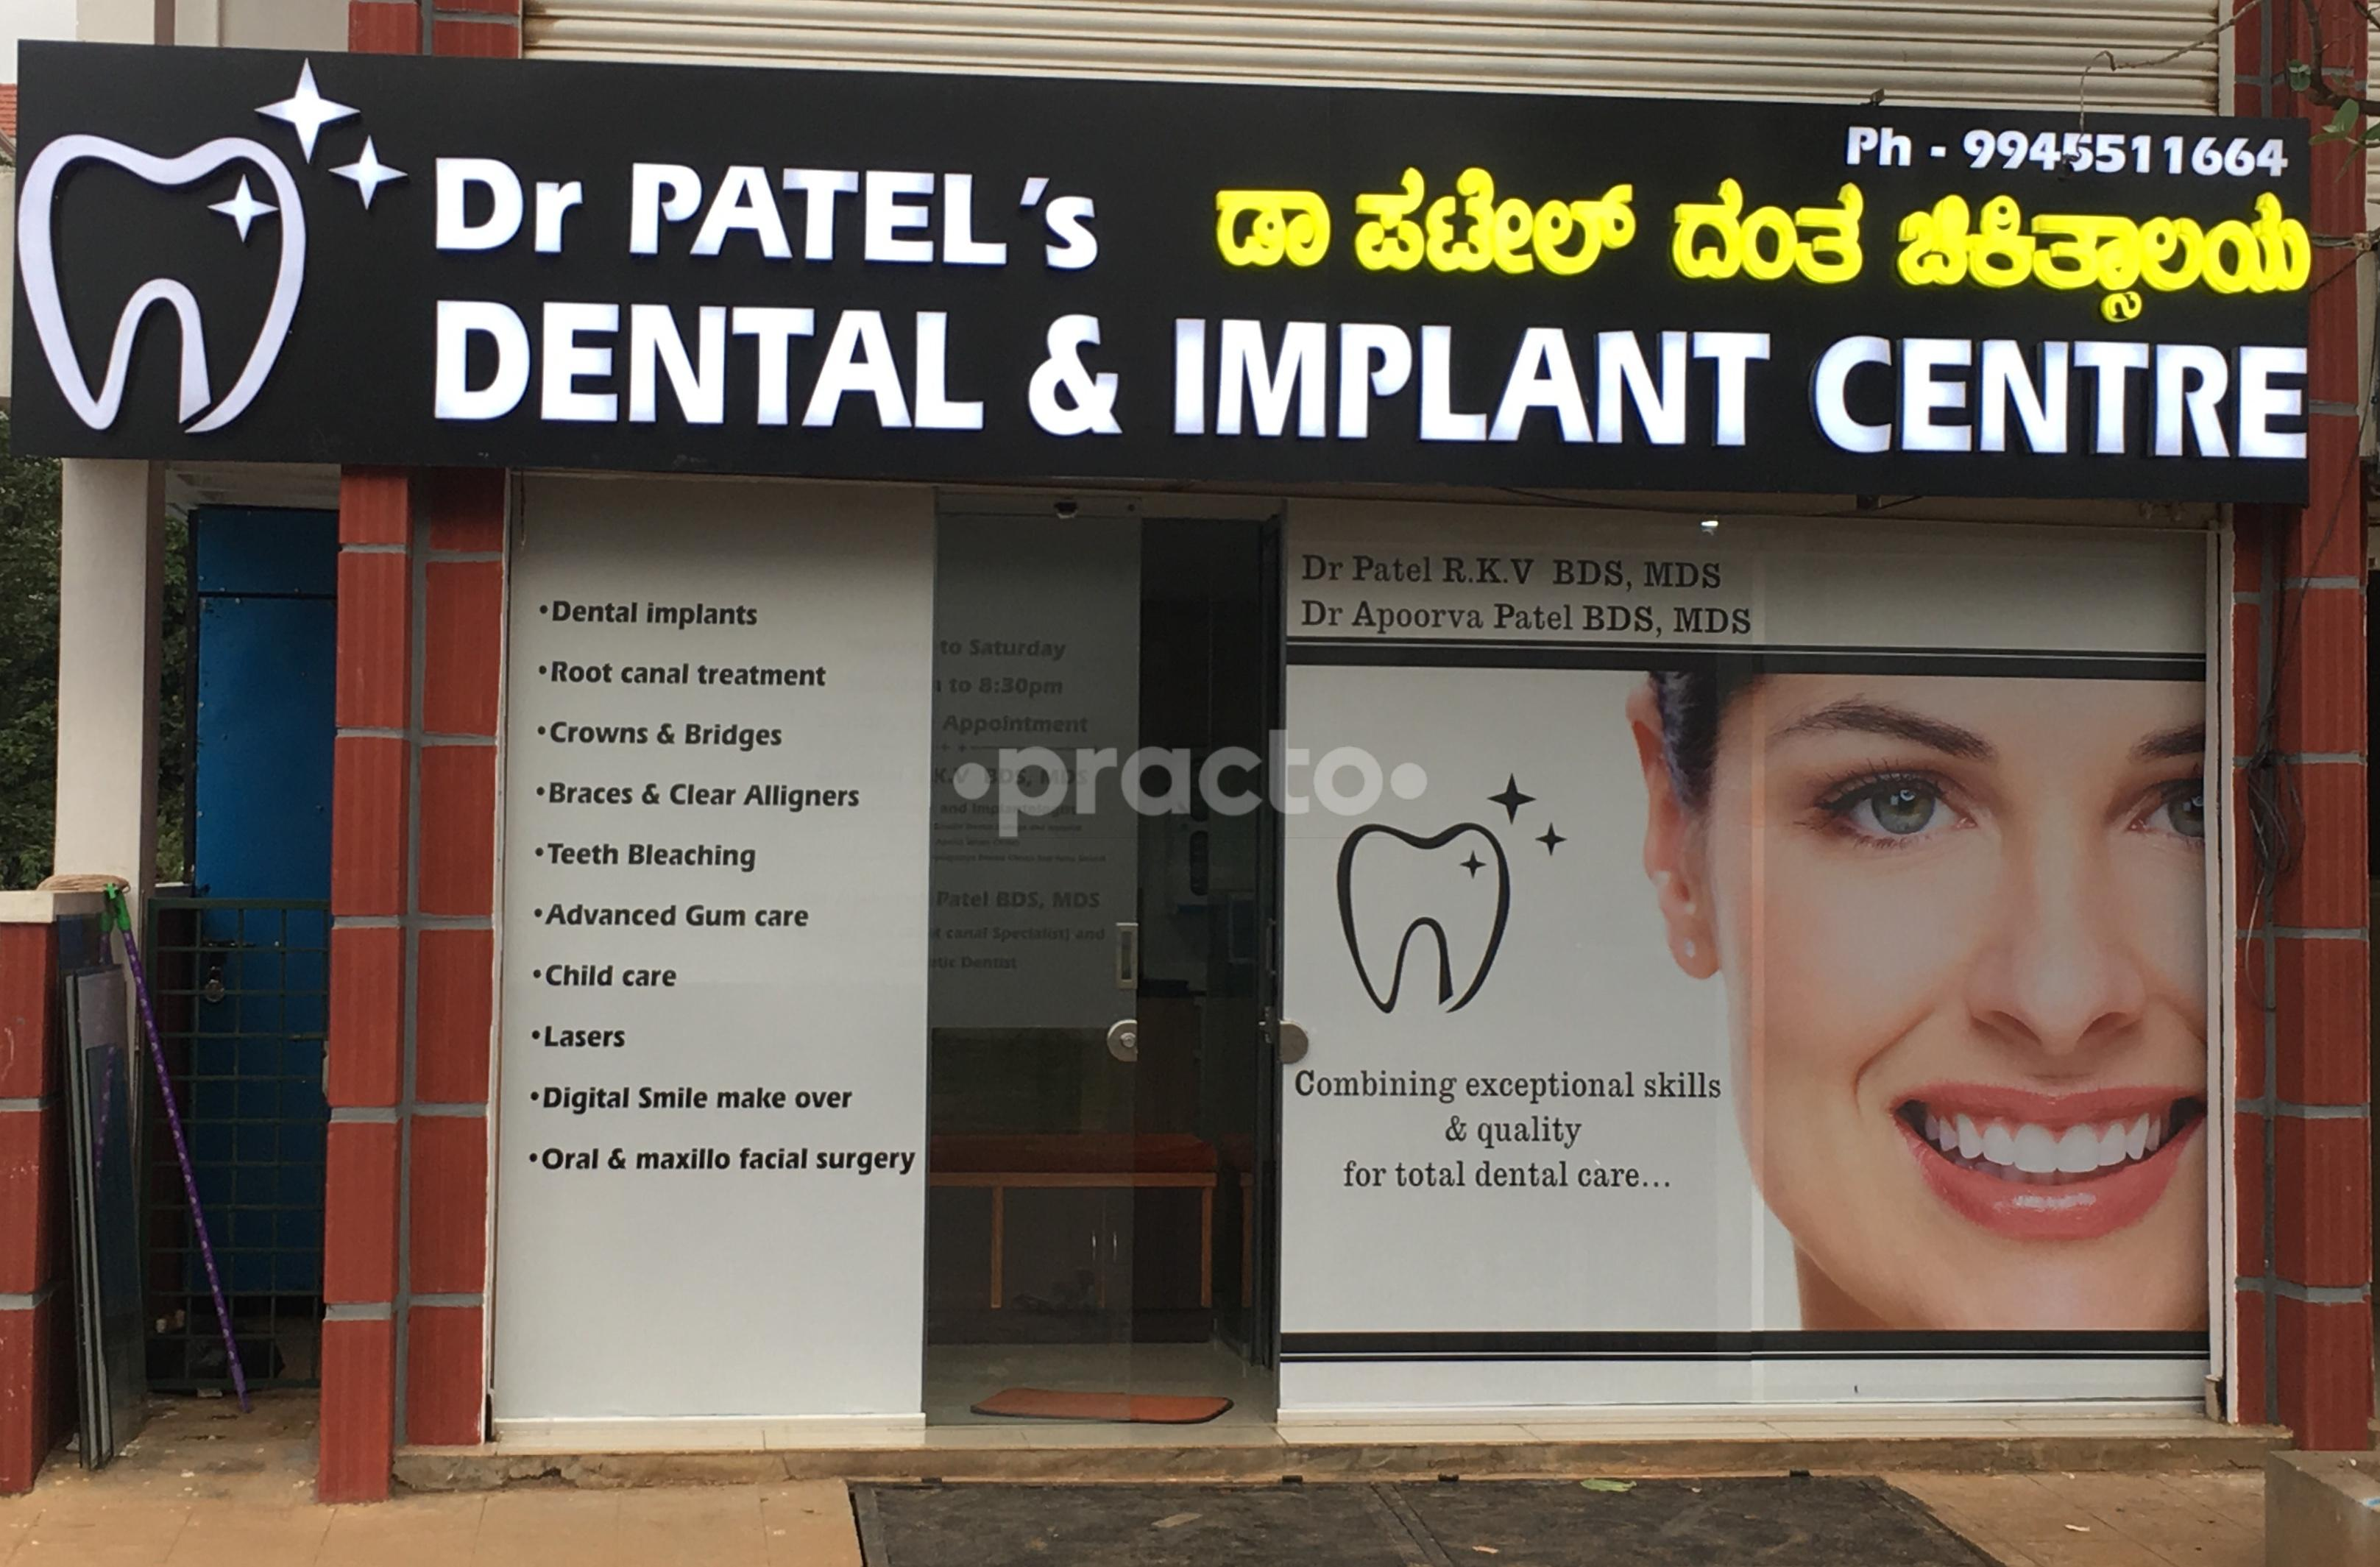 Dr Patel's Dental and Implant Centre, Multi-Speciality